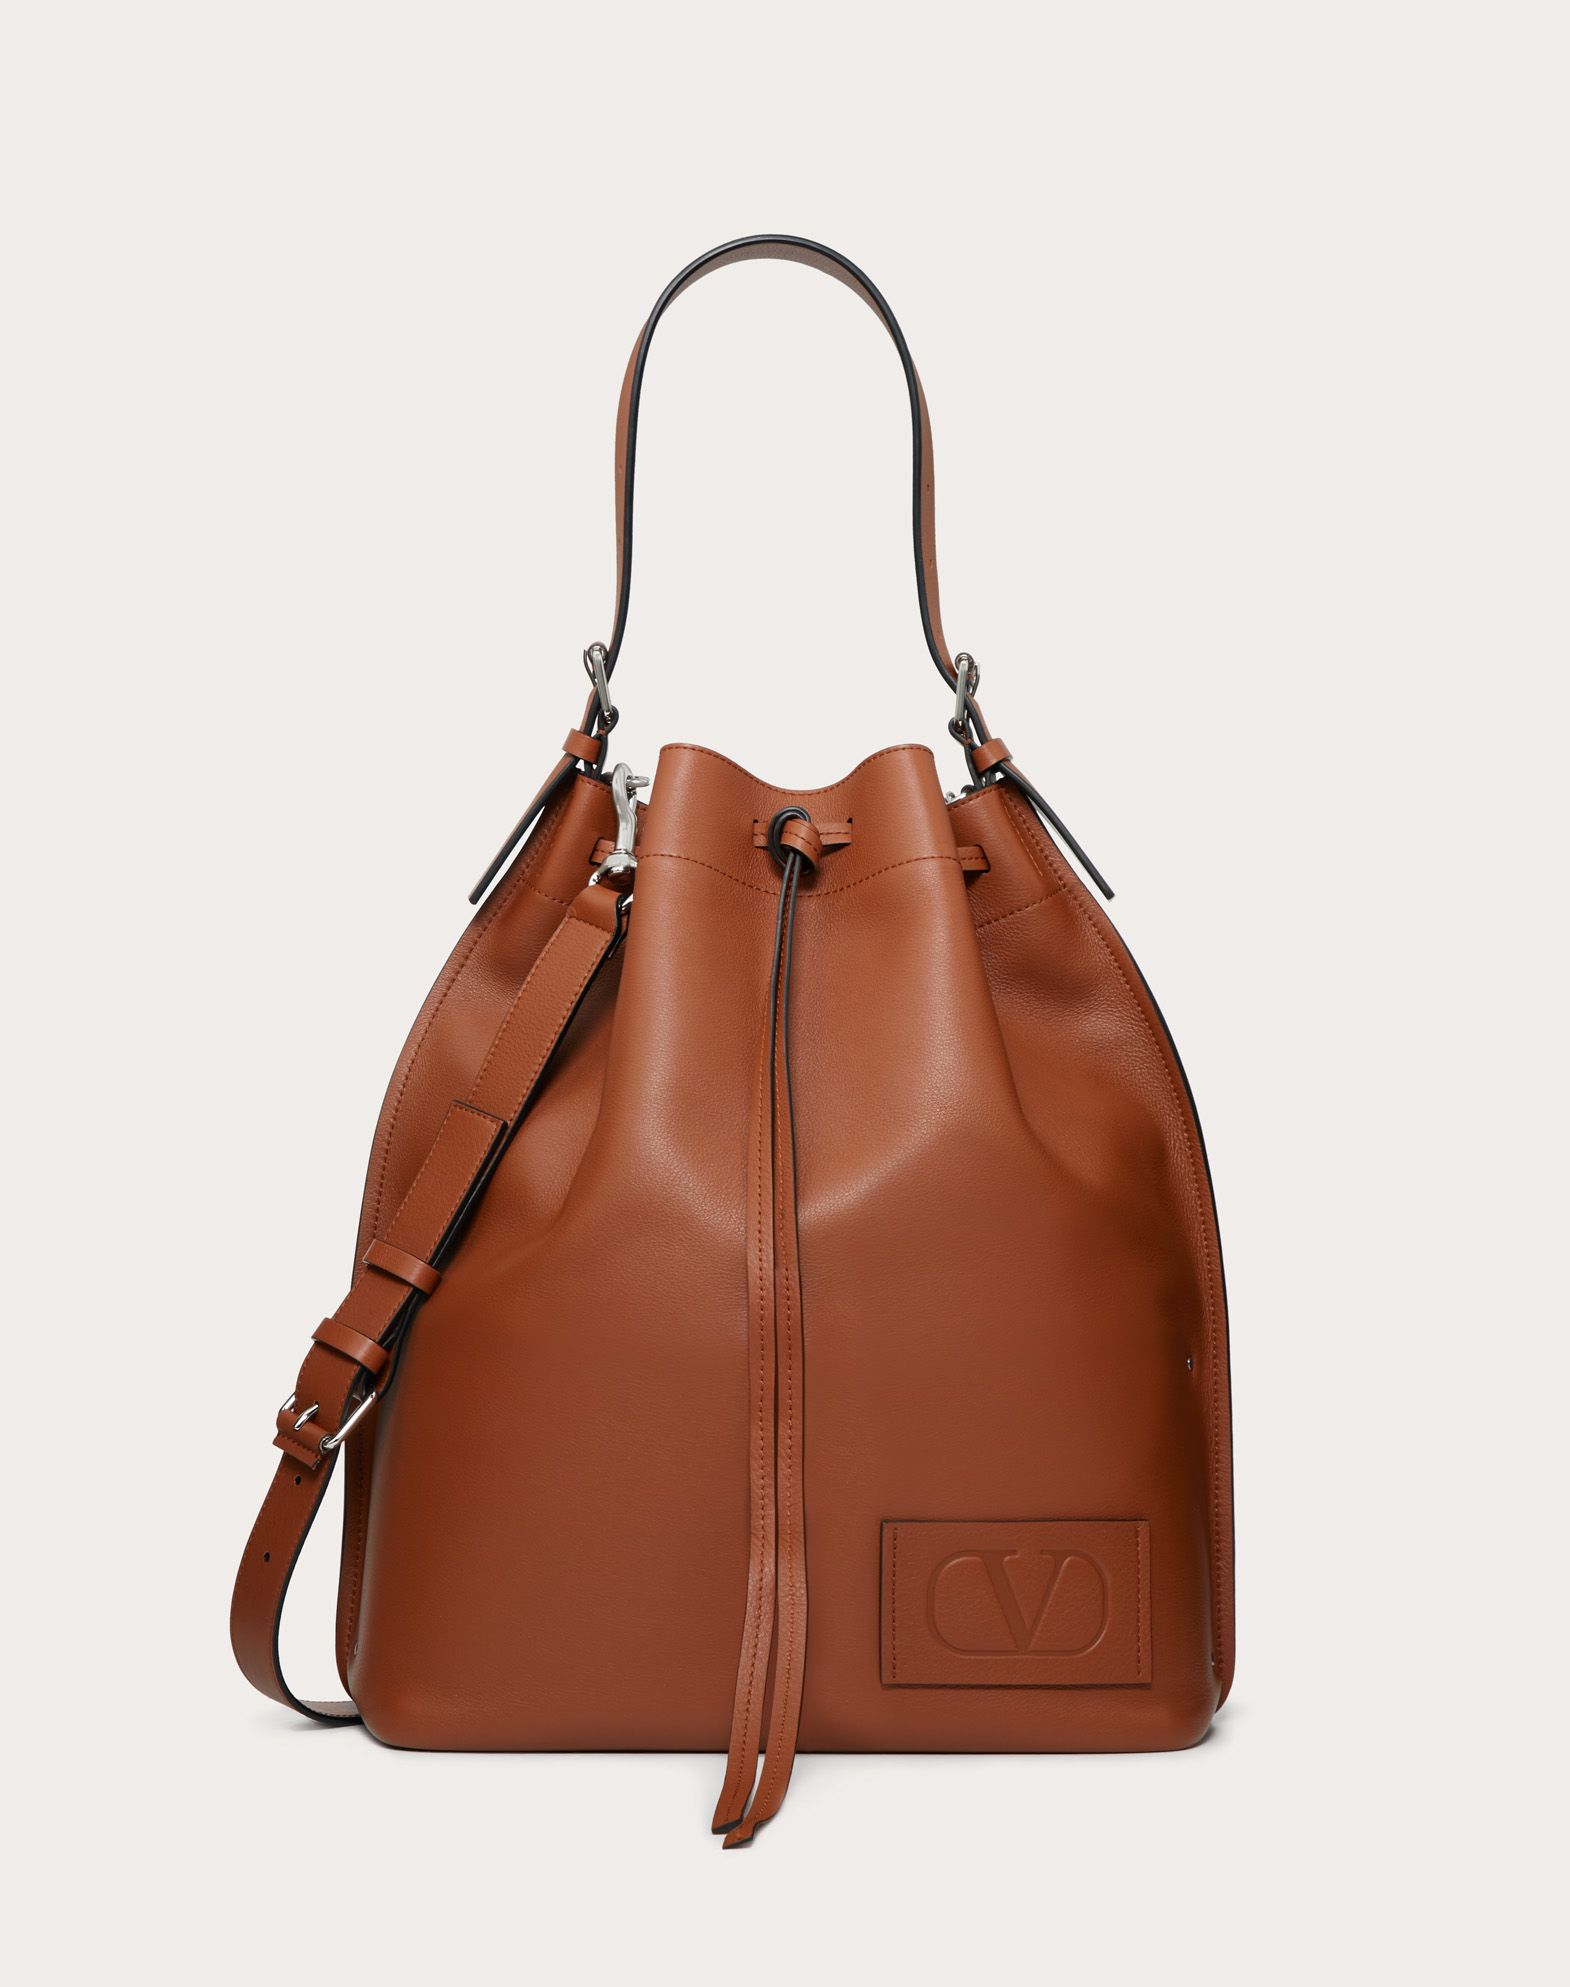 Leather VLOGO bucket bag